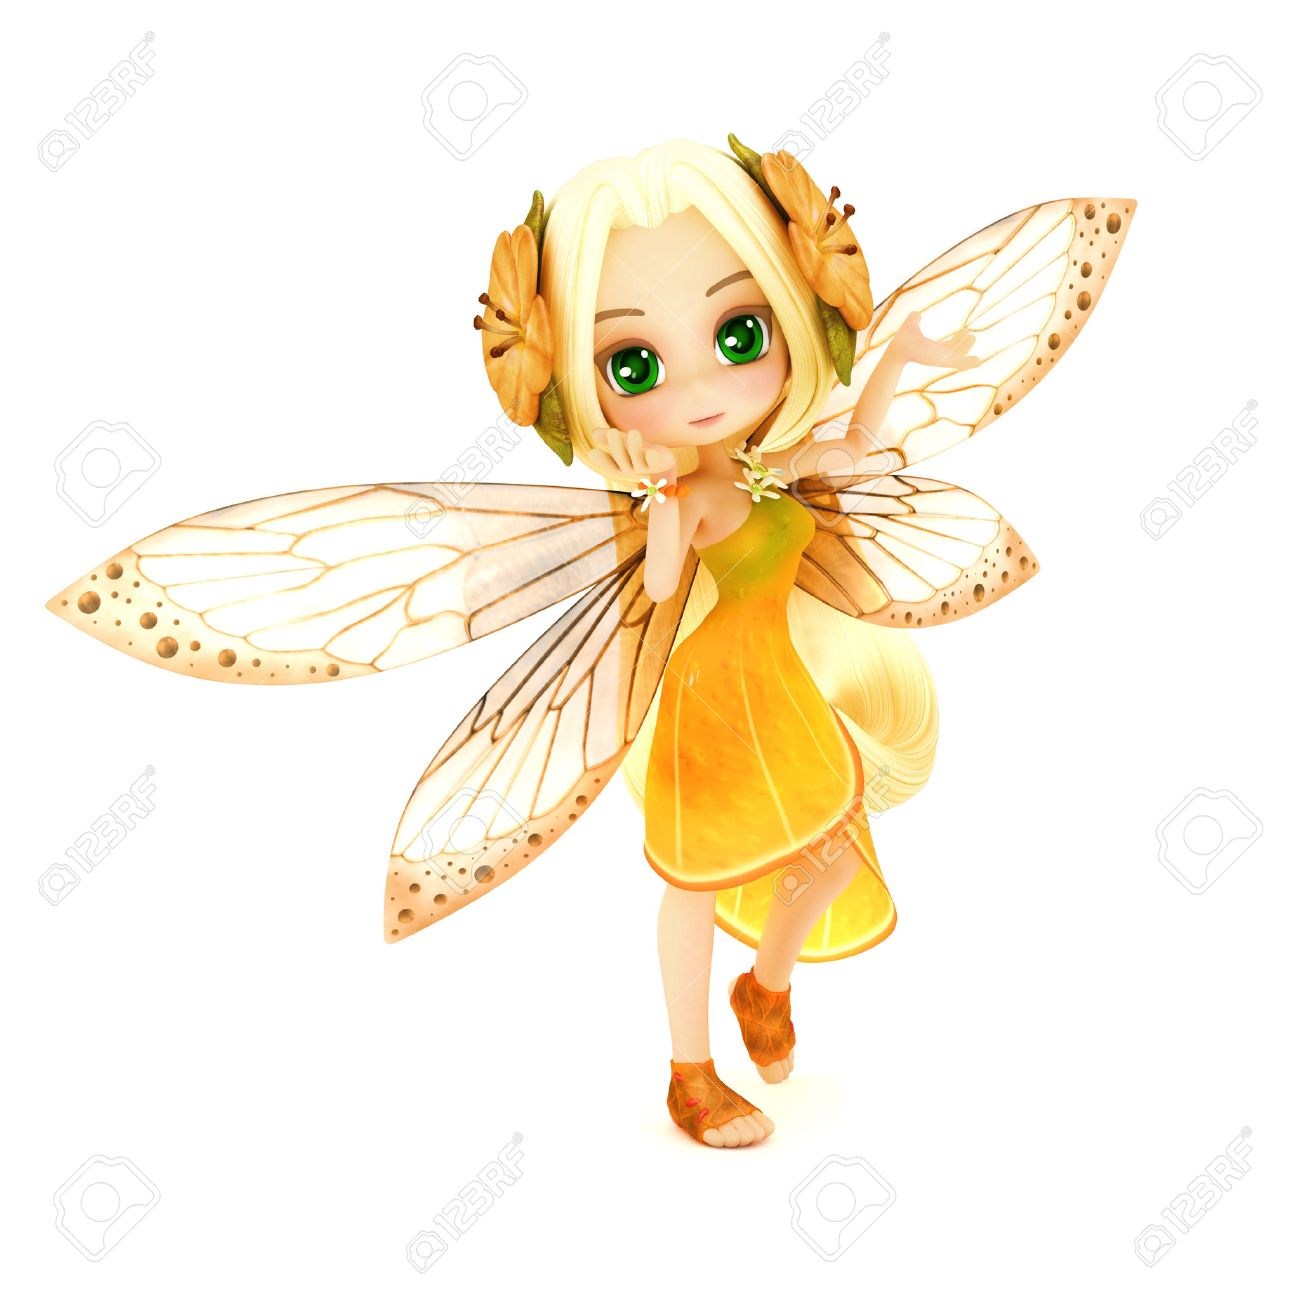 Cute toon fairy wearing orange flower dress with flowers in her hair posing on a white isolated background. Part of a little fairy series Standard-Bild - 43824428